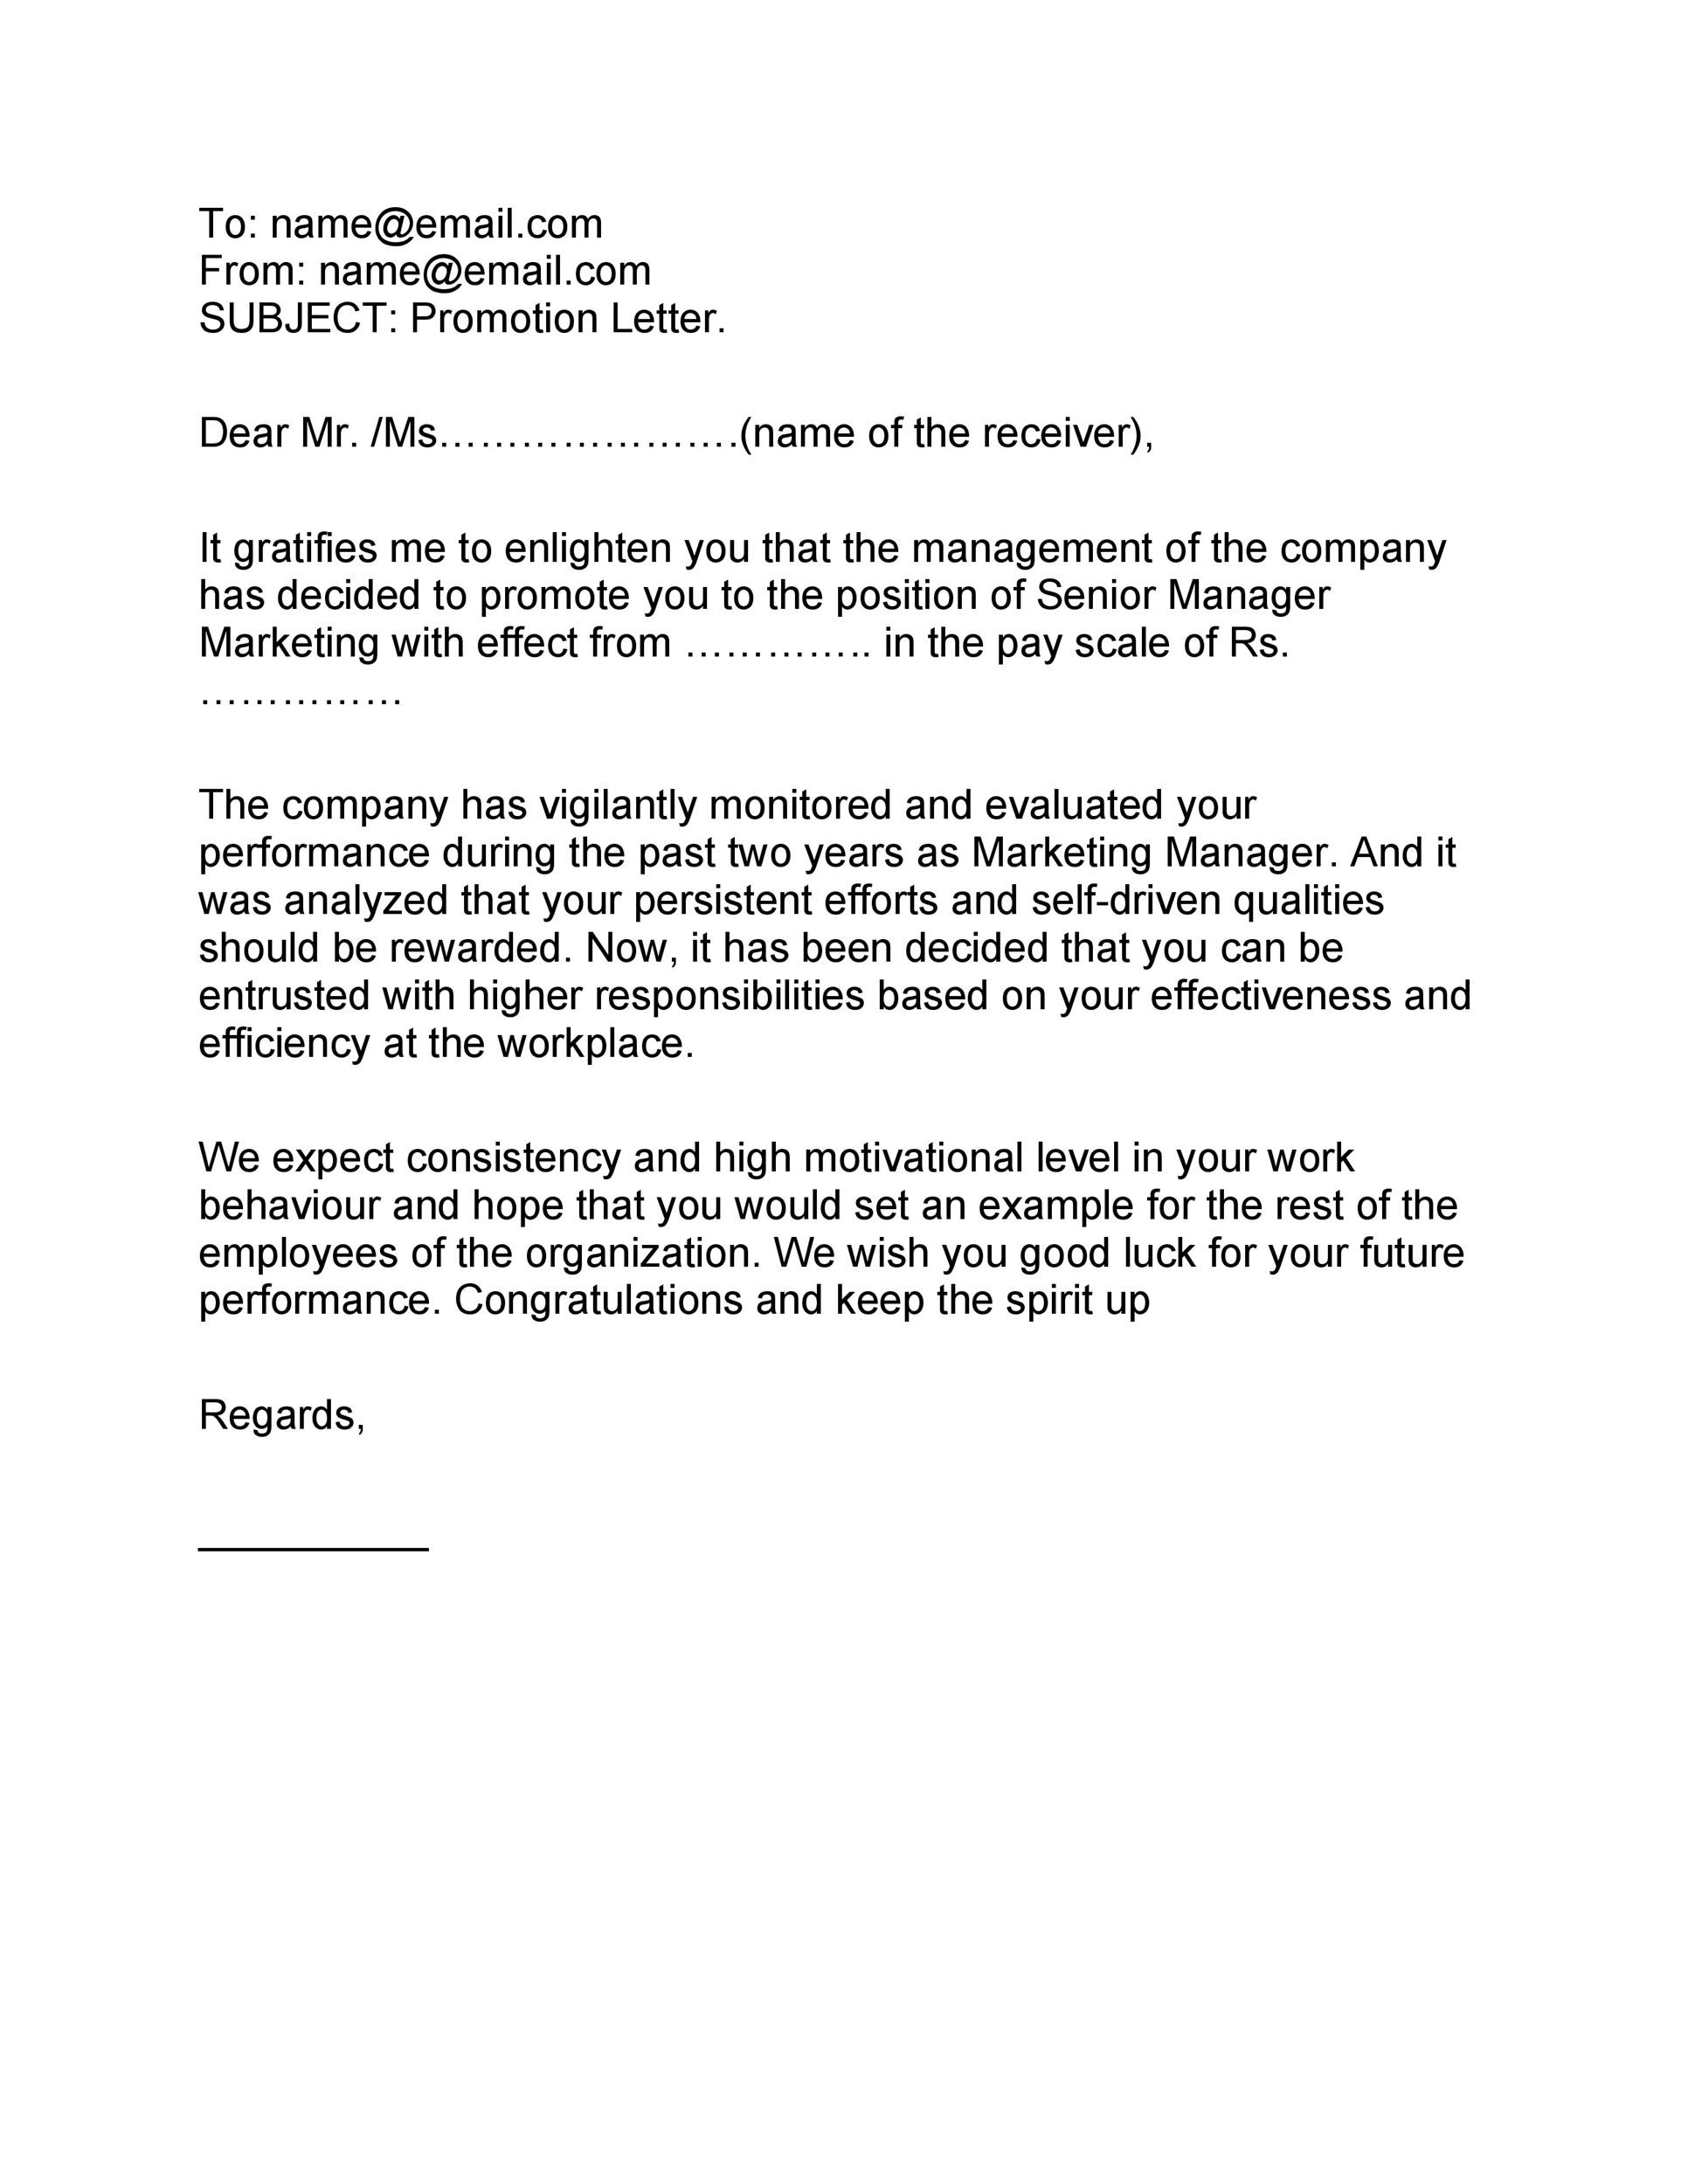 Free promotion letter 39